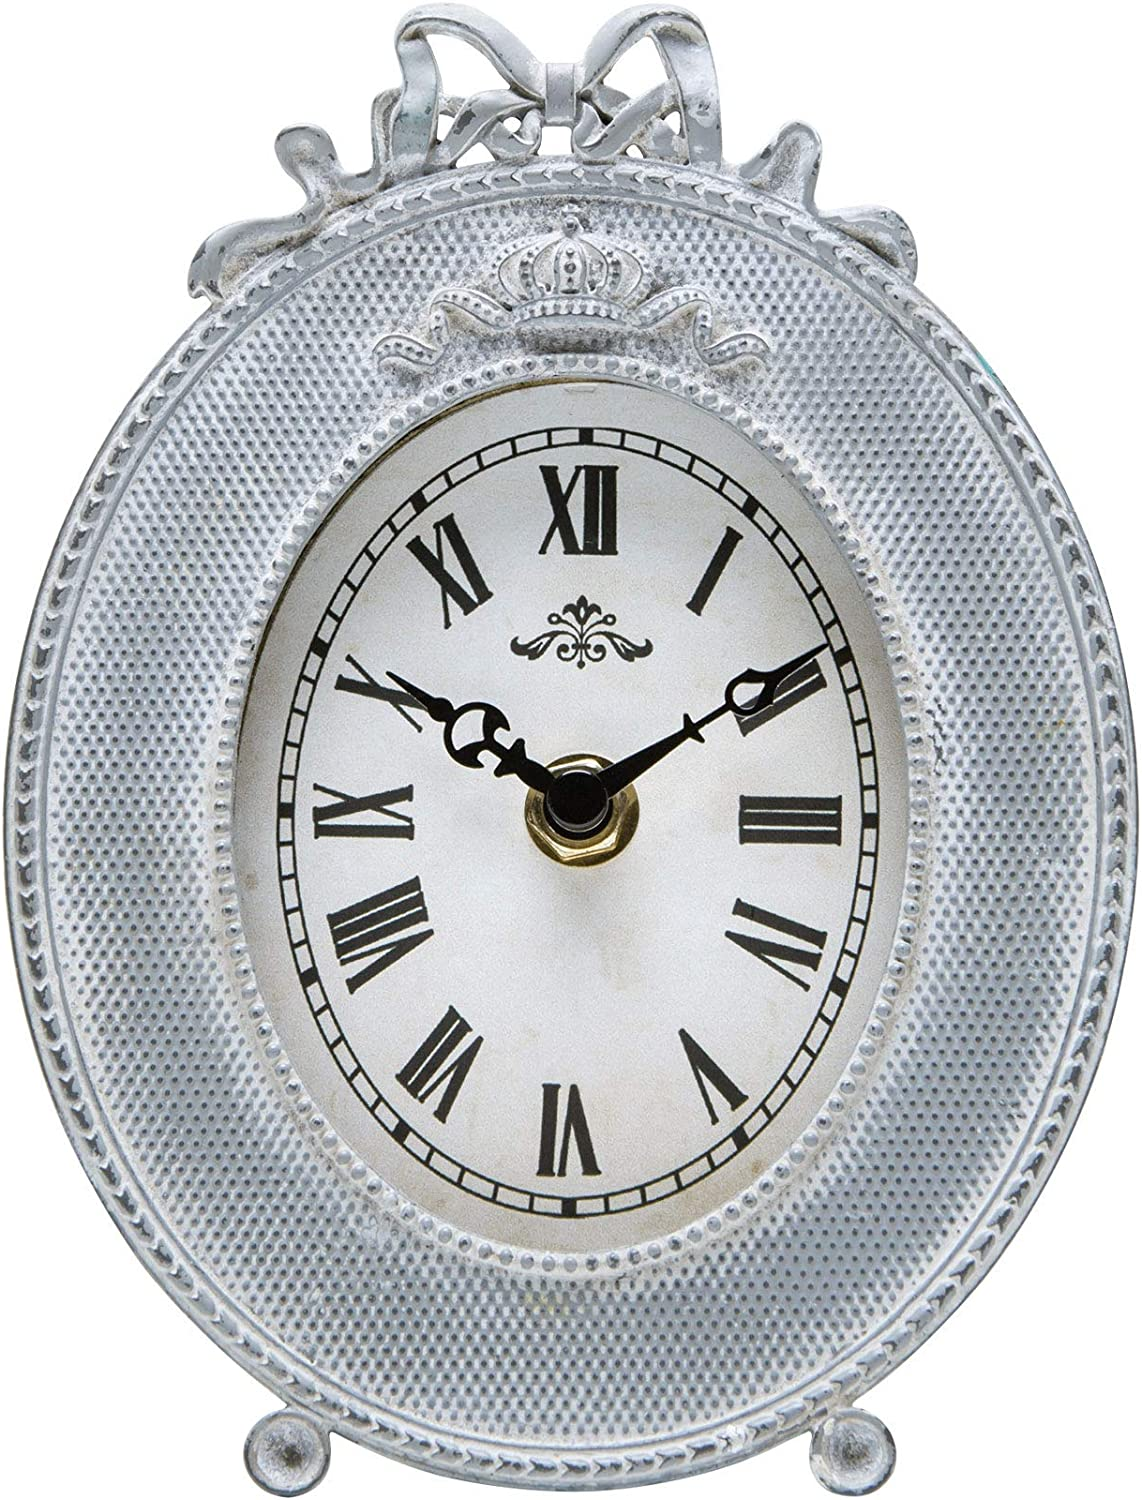 NIKKY HOME Vintage Table Clock, Decor Battery Operated Quartz Desk Clock 5.2'' by 2.2'' by 7.1''